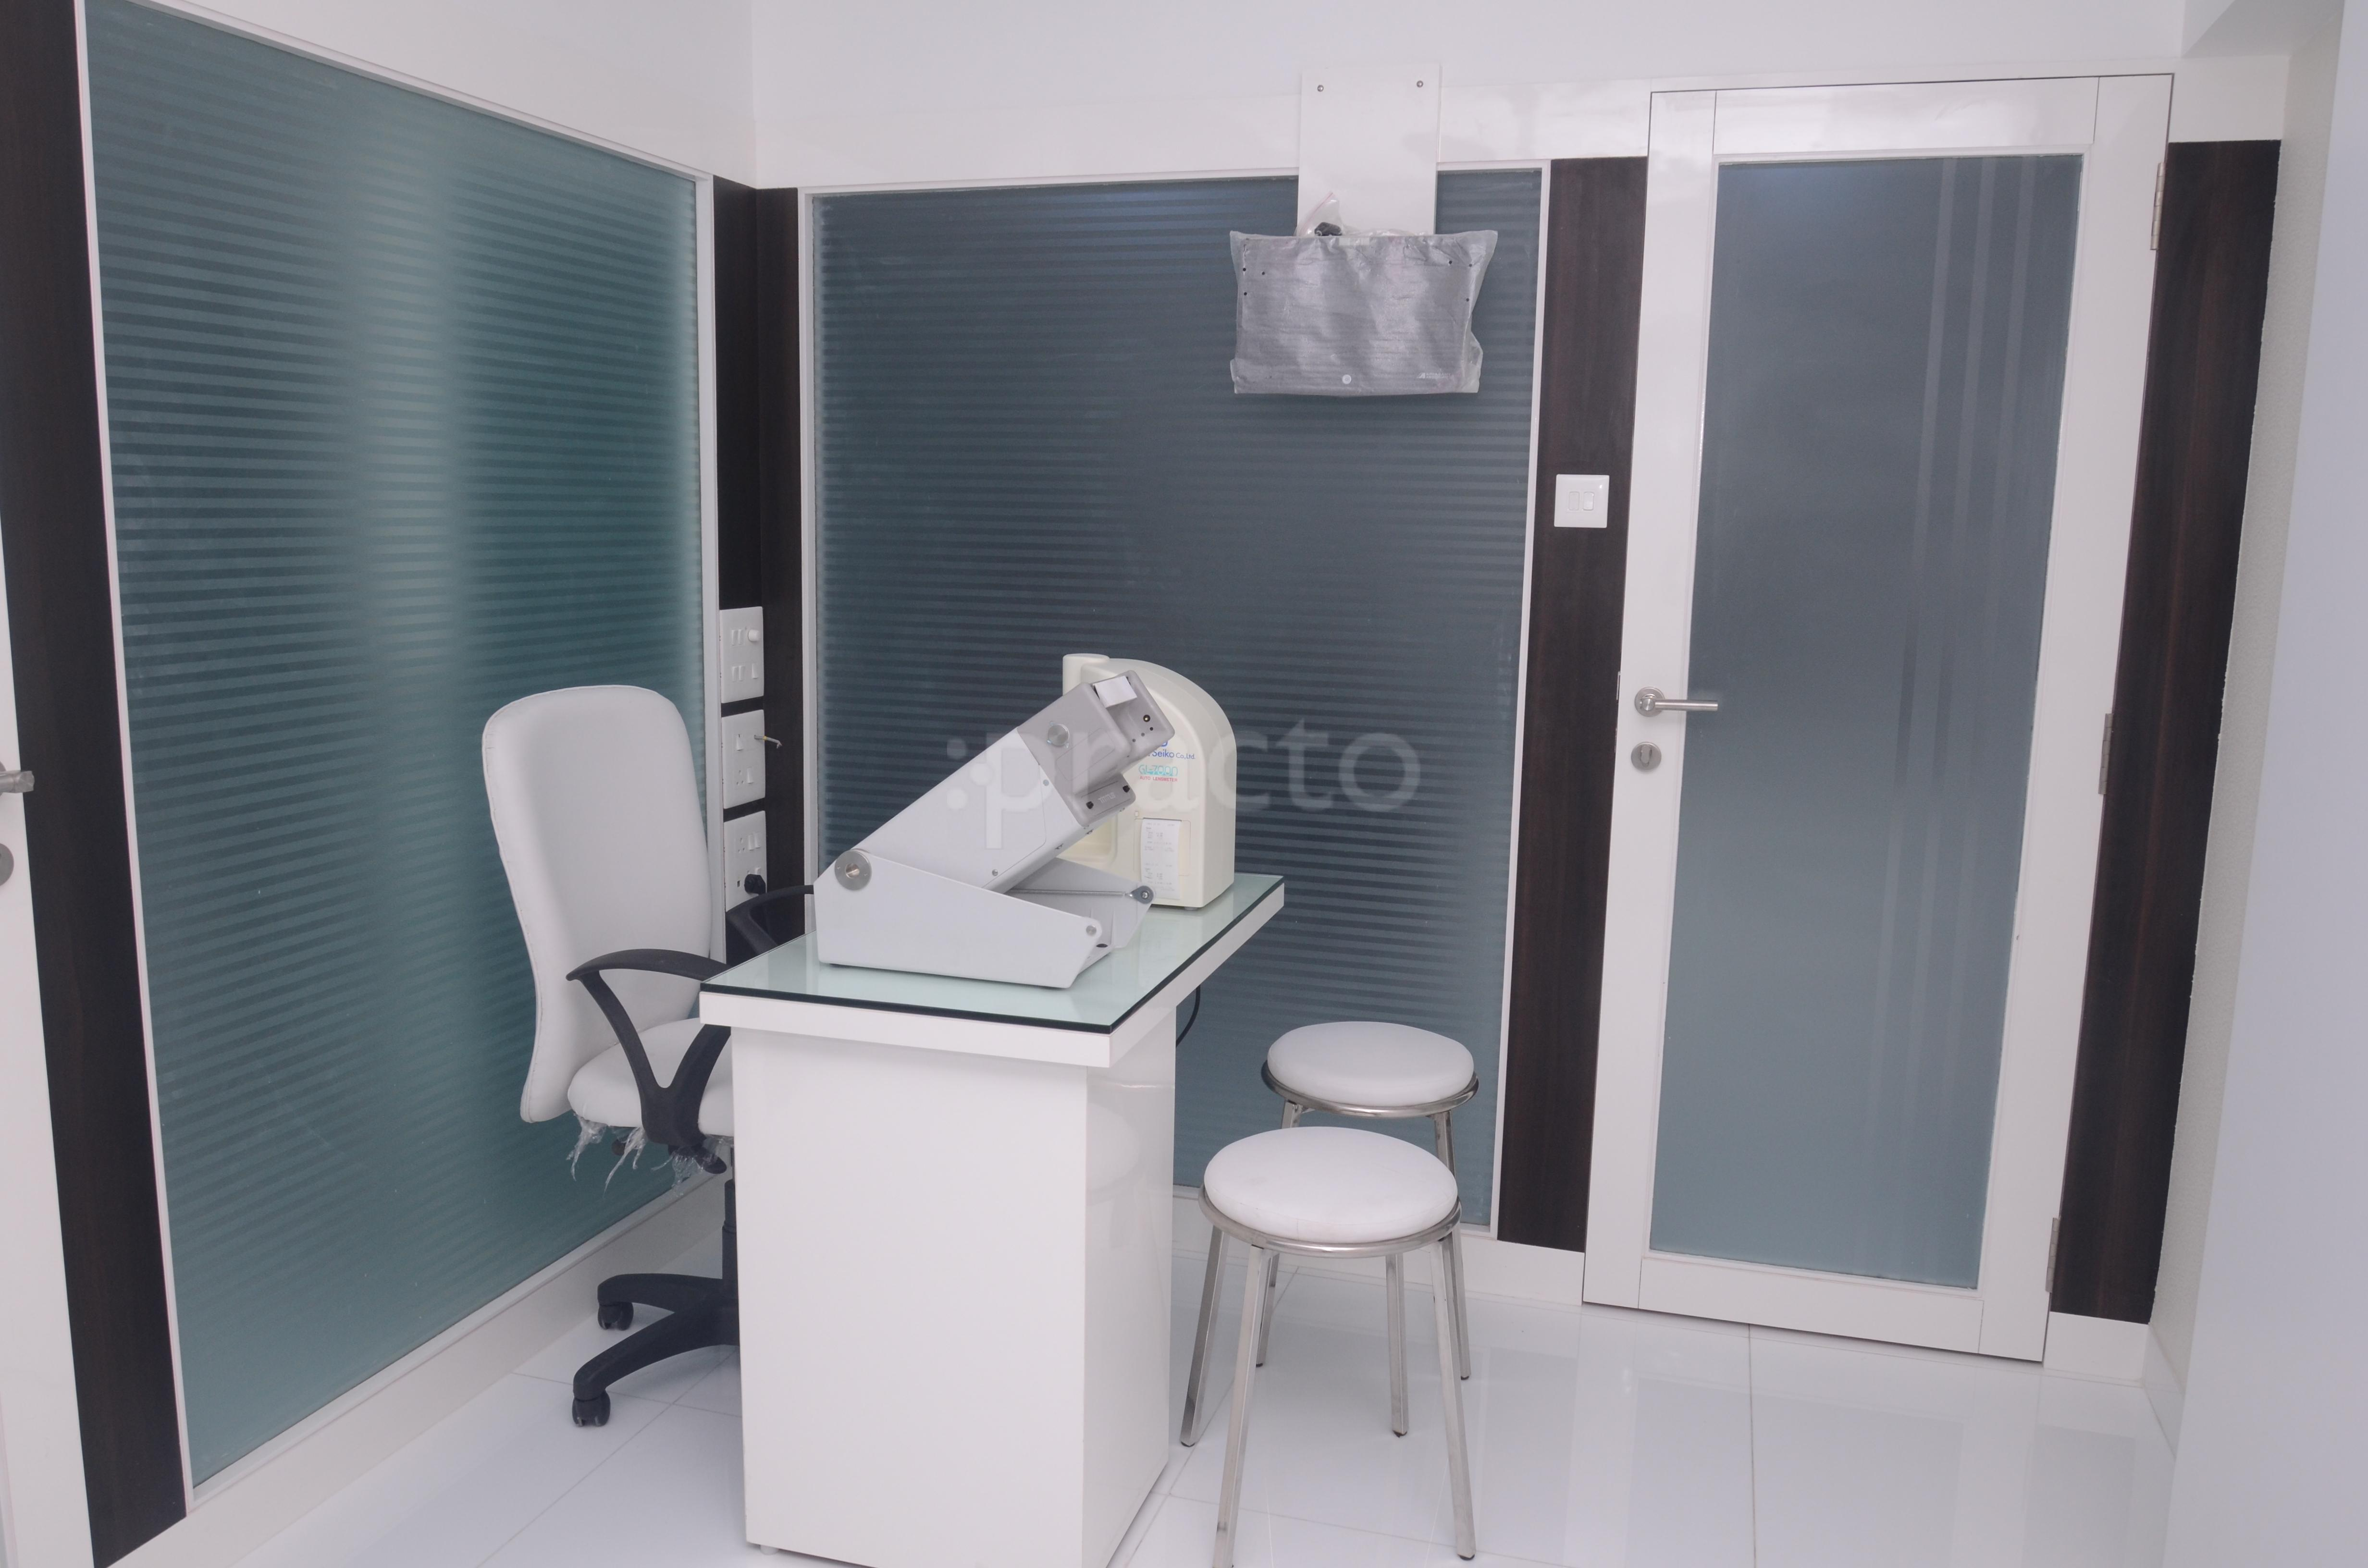 Best Clinics in Amboli Mumbai - Book Appointment View Reviews Address Fees | Practo - Page 19 & Best Clinics in Amboli Mumbai - Book Appointment View Reviews ...